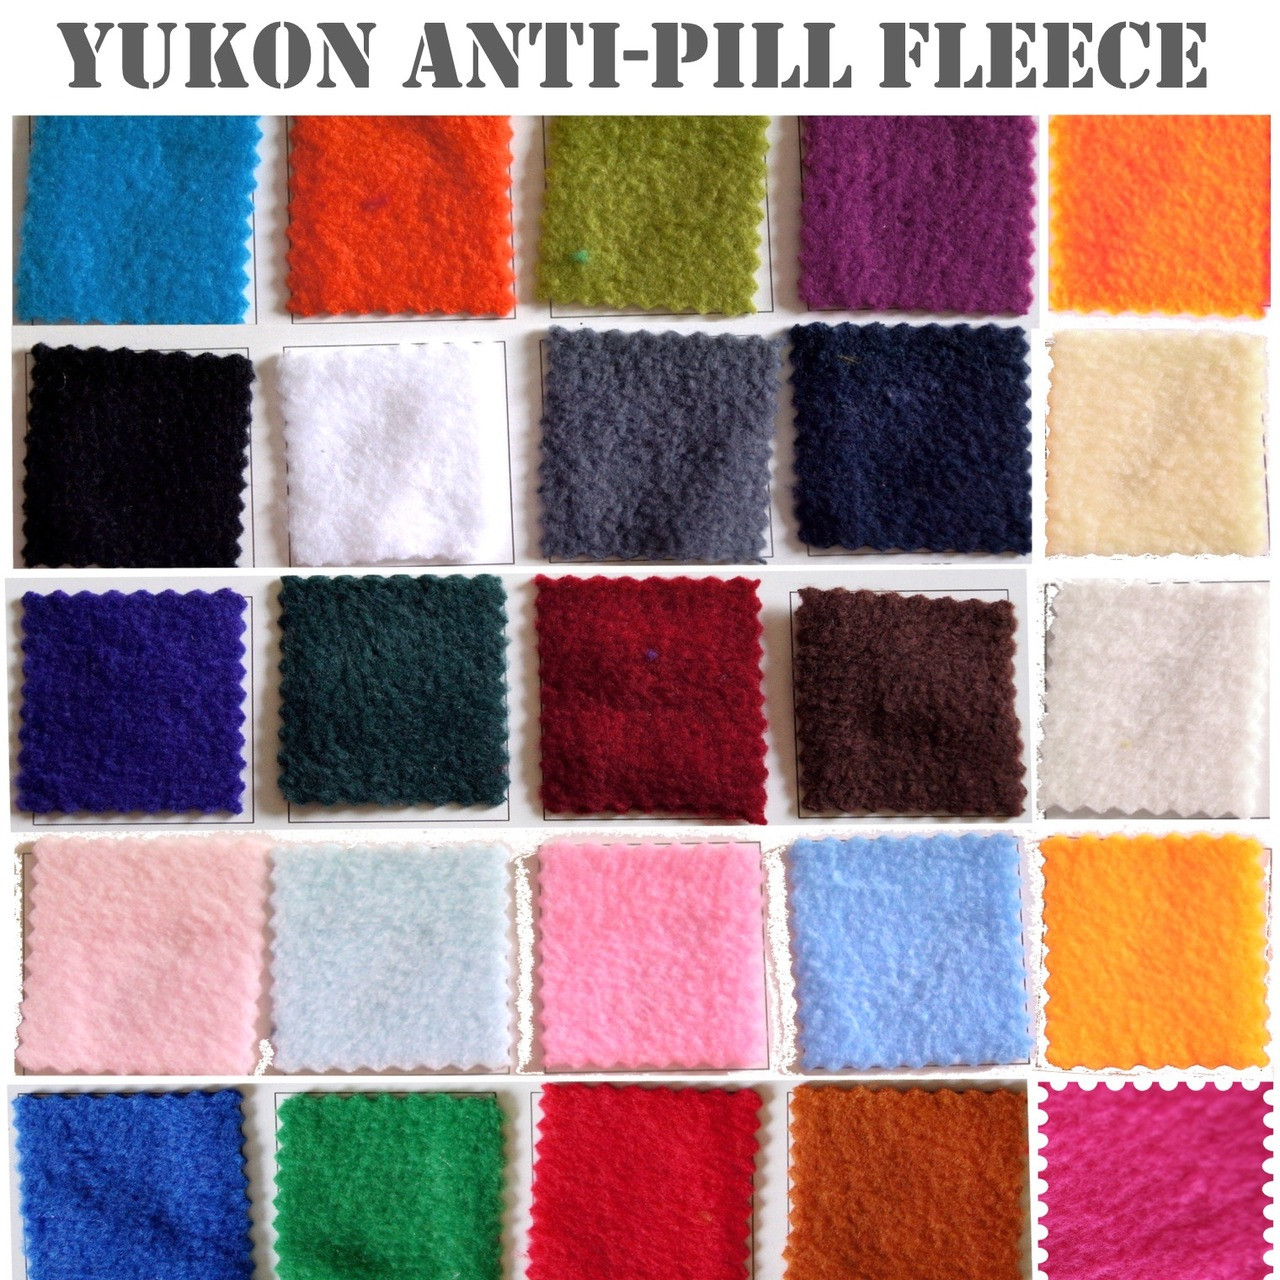 Anti Pill Fleece Yukon Fleece Fabric Wholesale